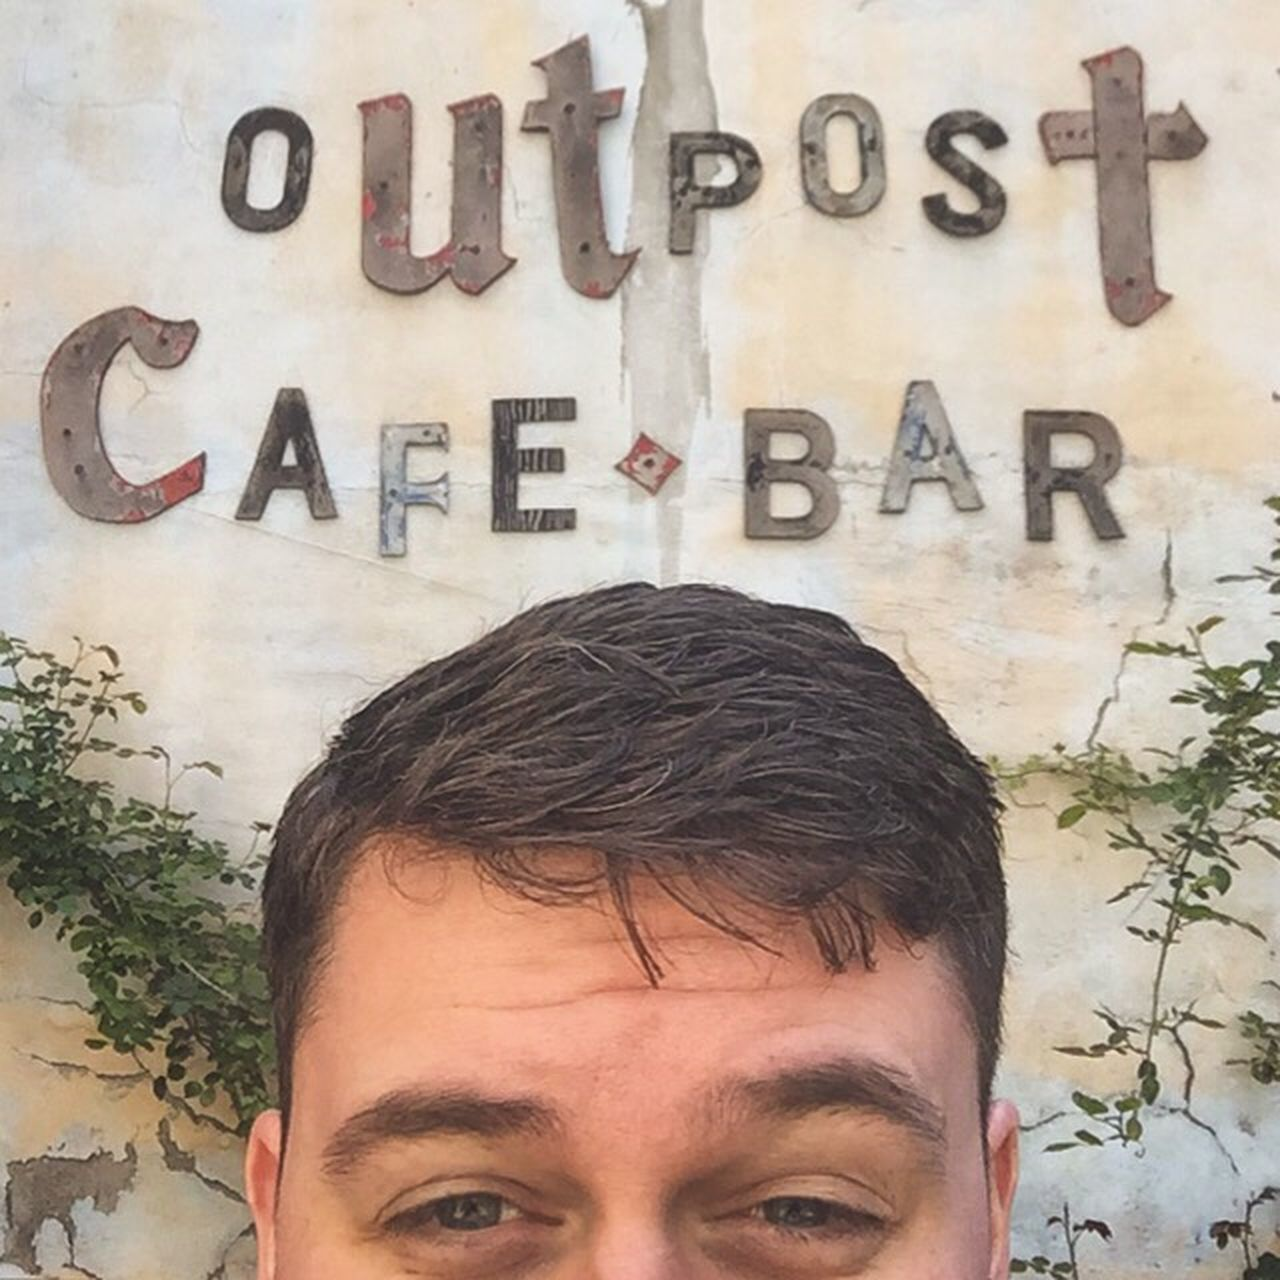 Self Self Portrait Selfie ✌ Brooklyn Clinton Hill Outpost Favorite Coffee Coffee Time Cafe New York New York City I ❤️ NYC